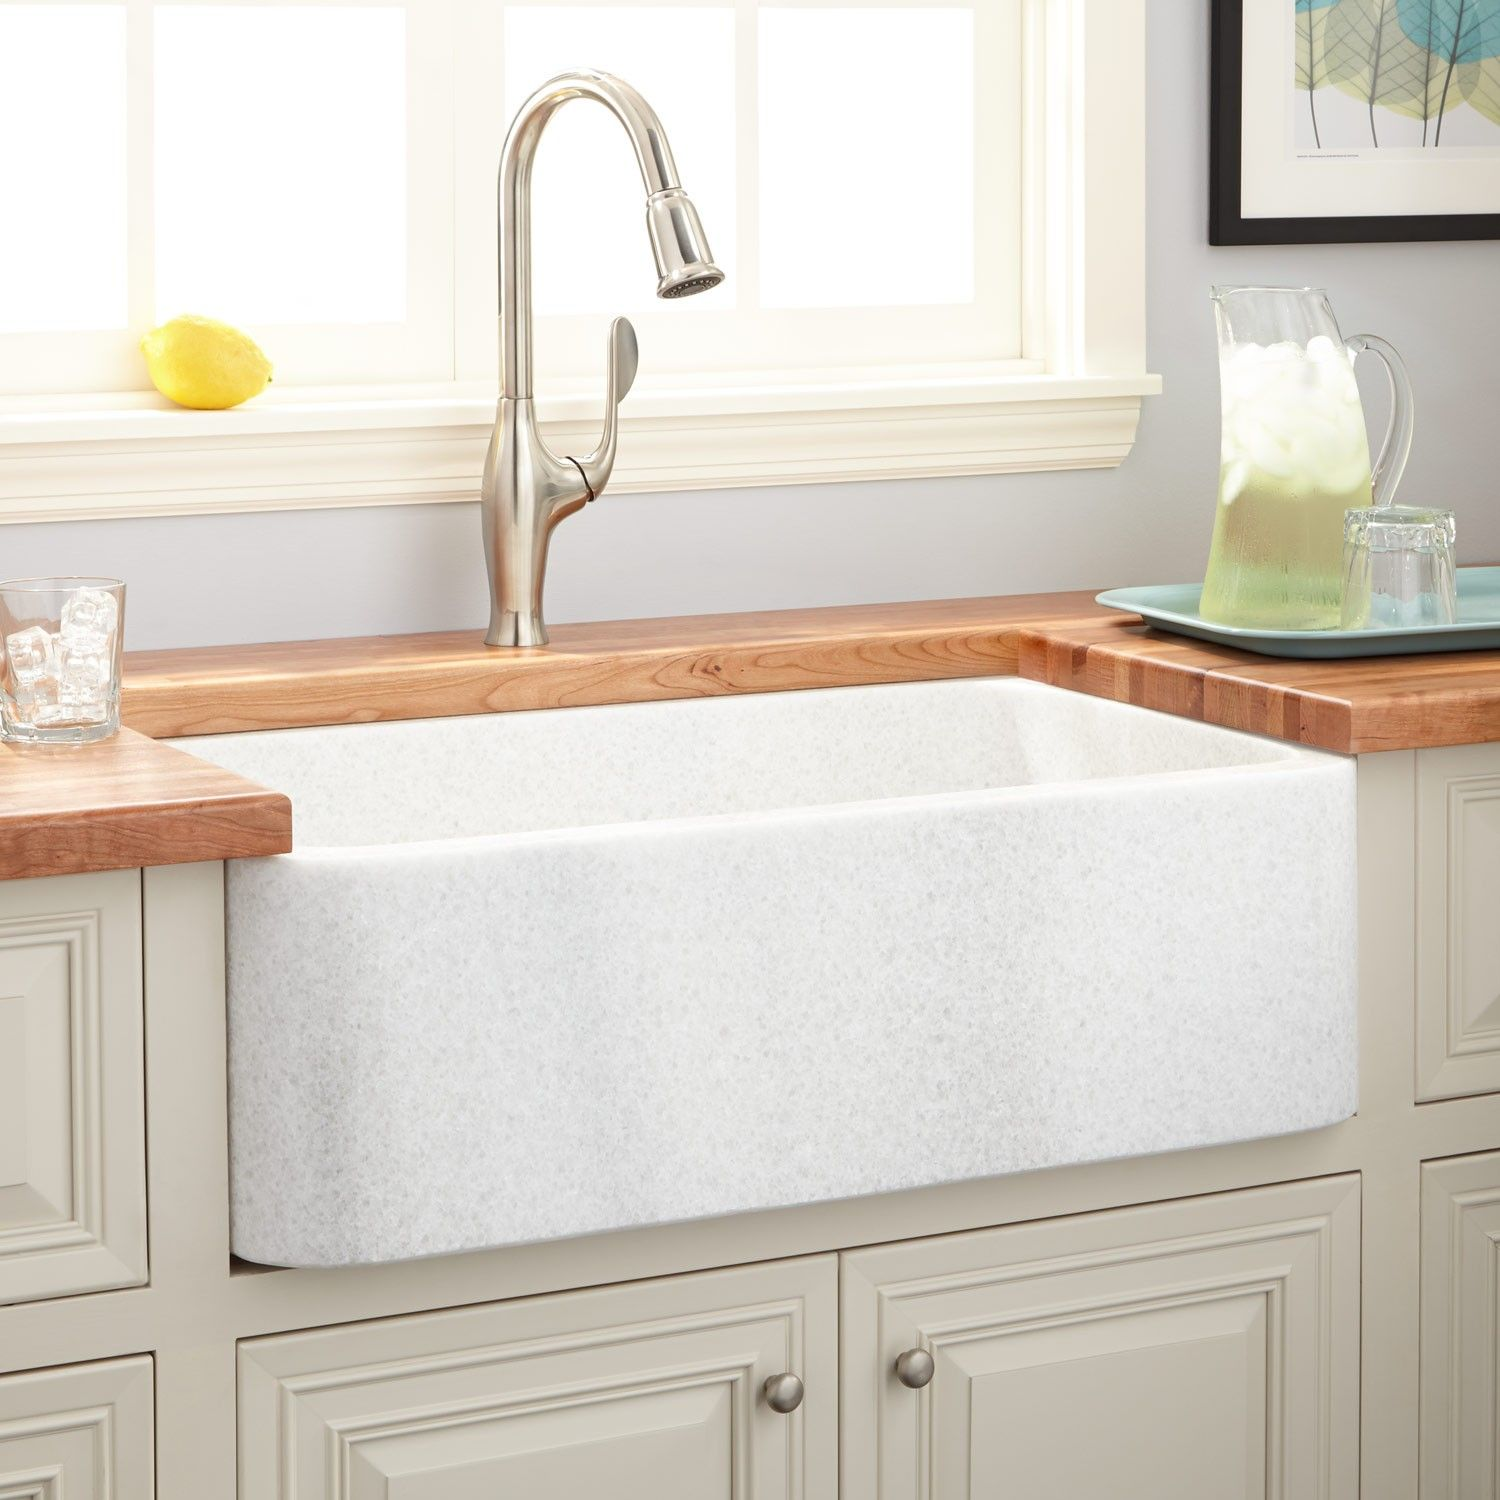 36 Polished Marble Farmhouse Sink White Thassos With Images